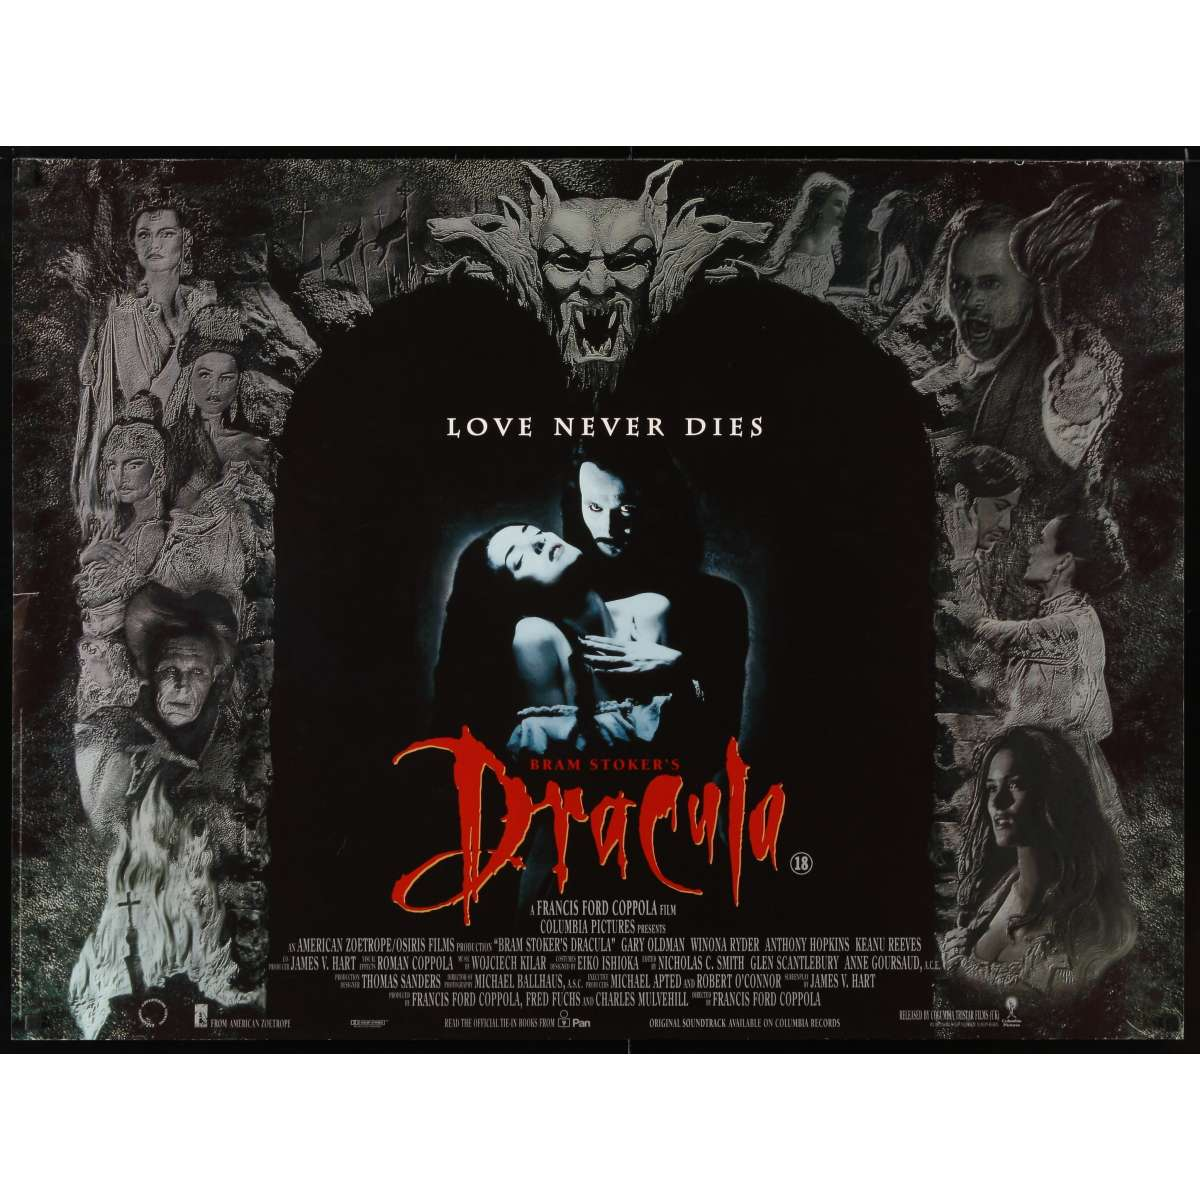 bram stoker 39 s dracula movie poster francis ford coppola. Cars Review. Best American Auto & Cars Review